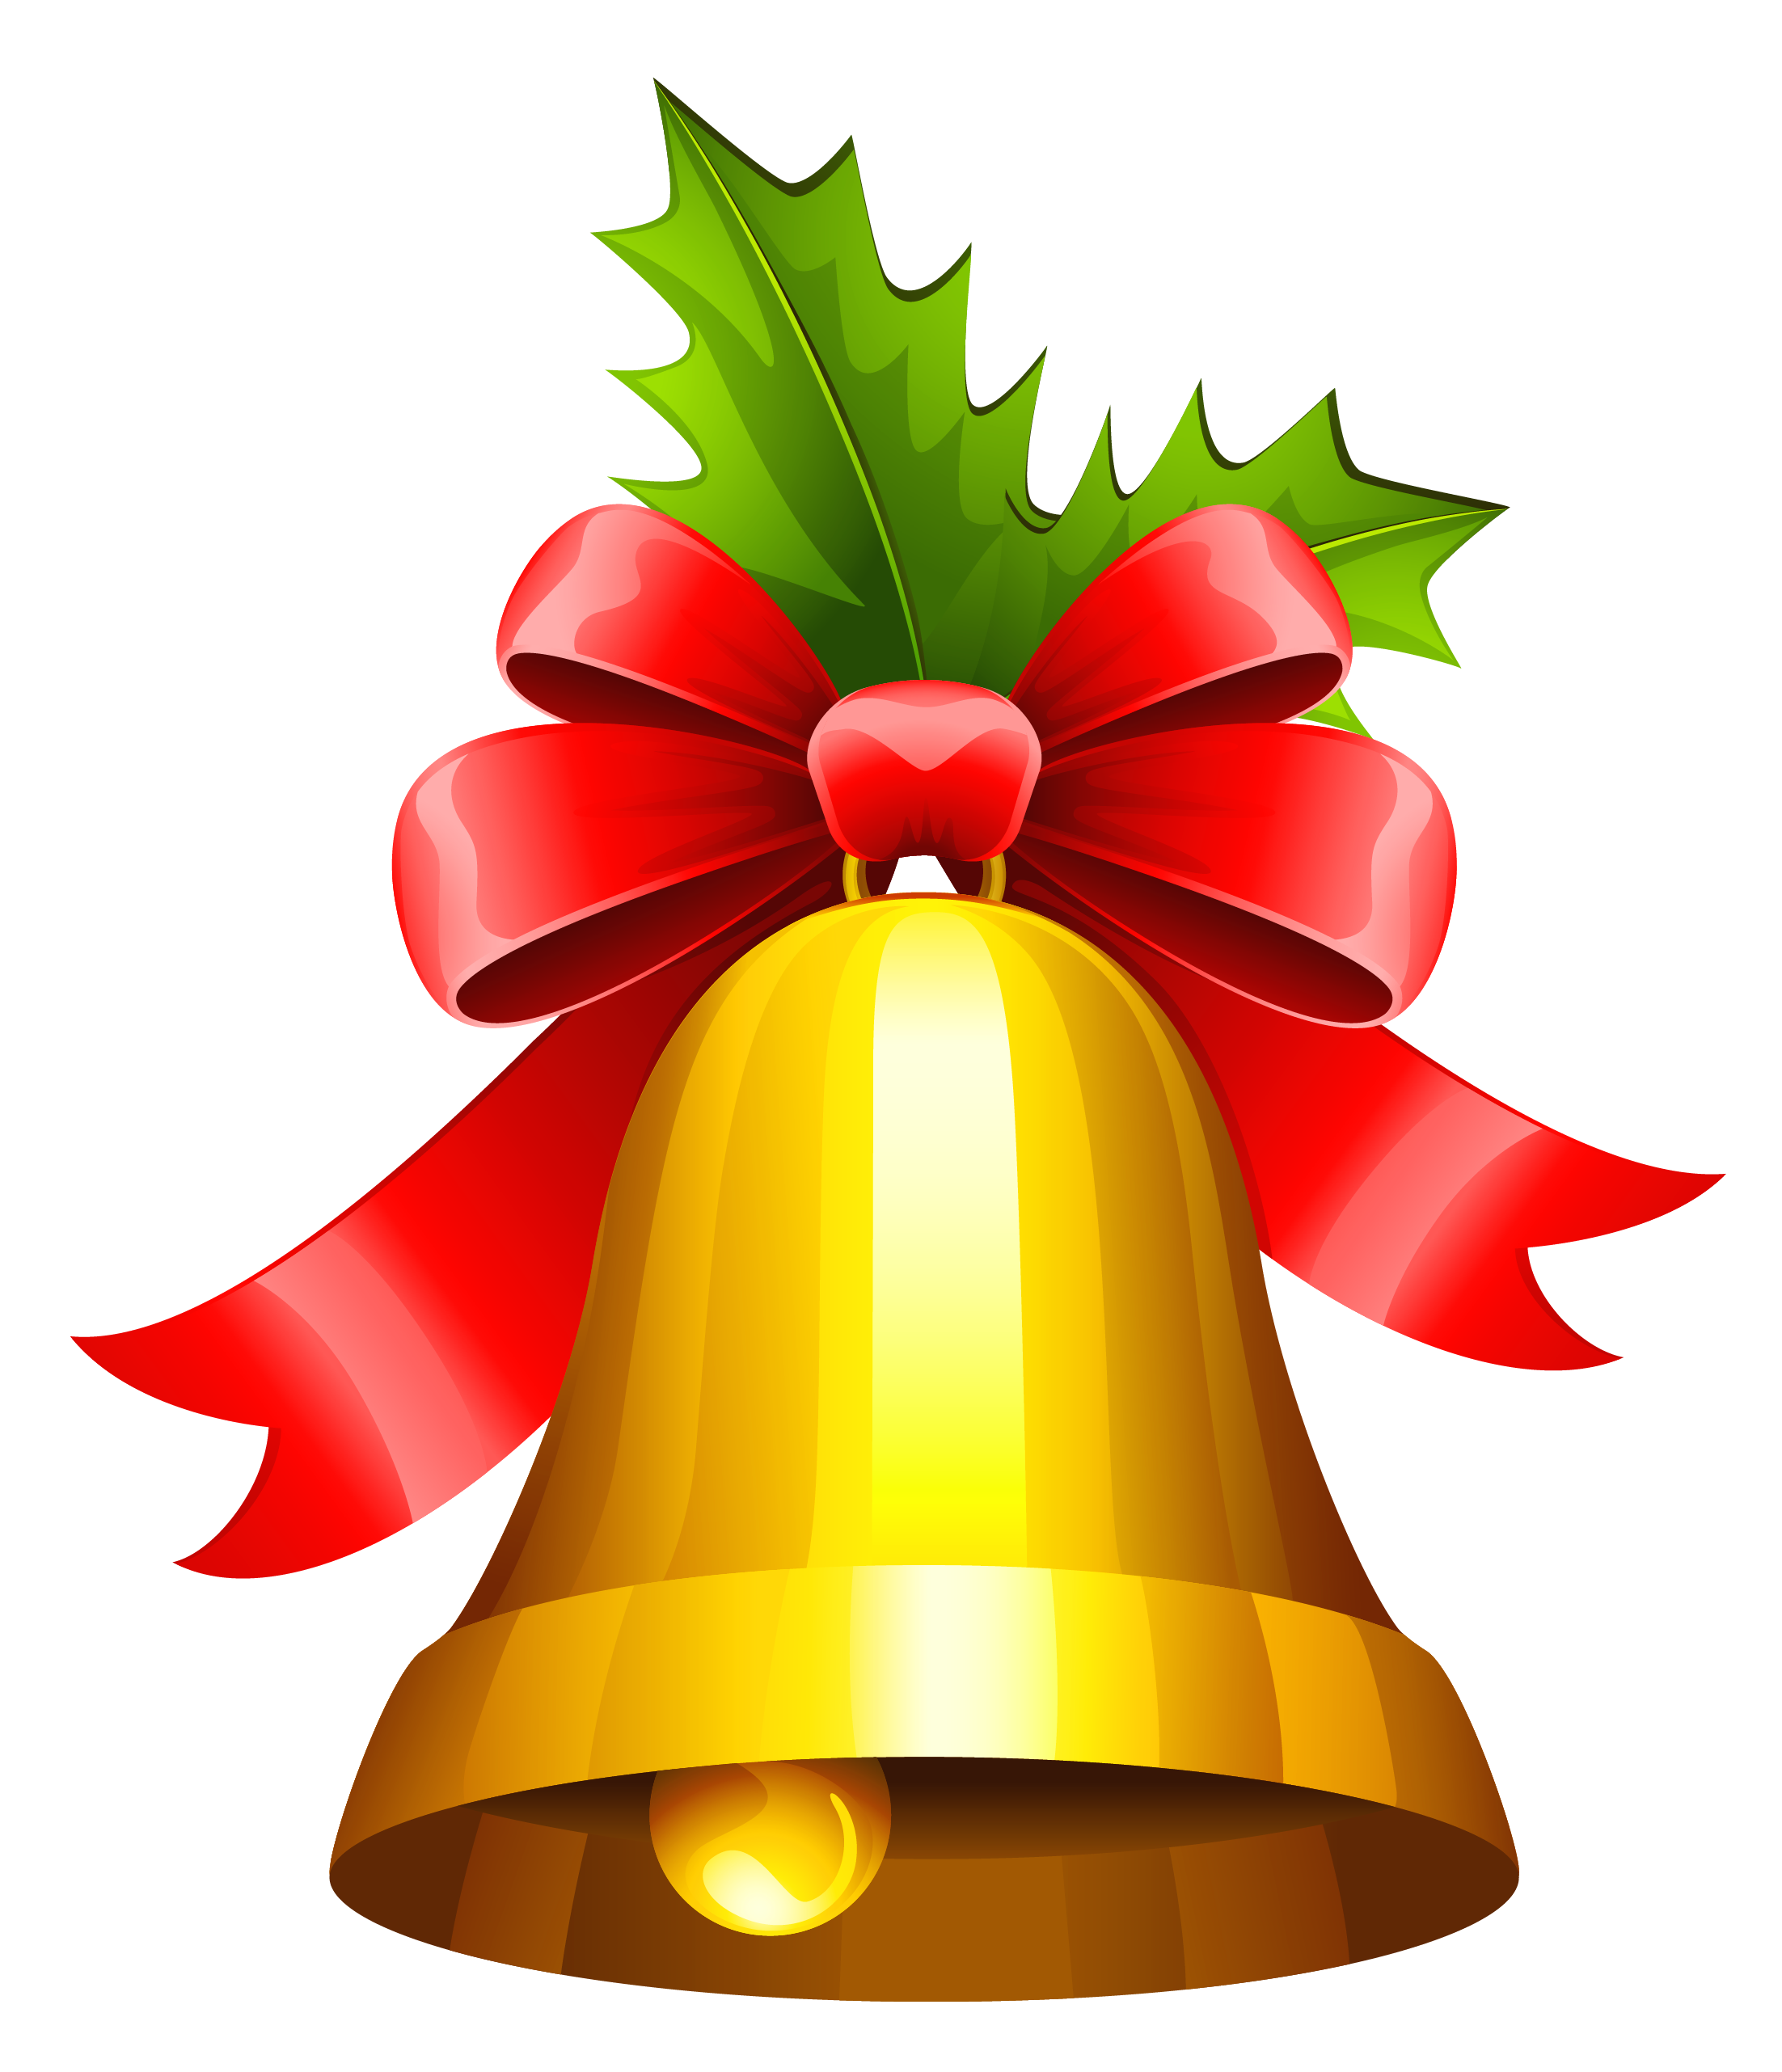 Christmas Bell PNG Transparent Images | PNG All